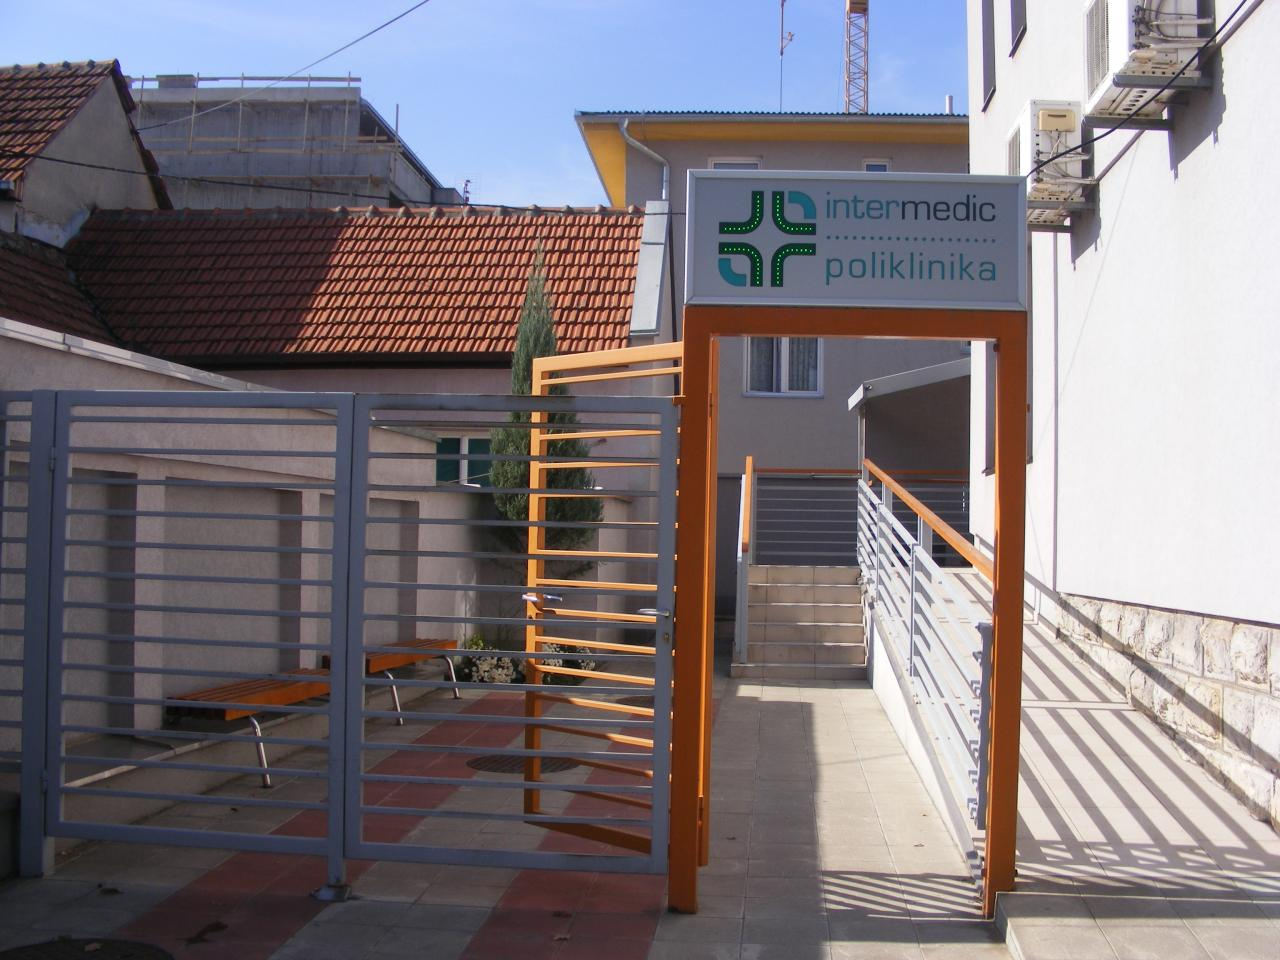 POLIKLINIKA INTERMEDIC Doctors offices Valjevo - Photo 1